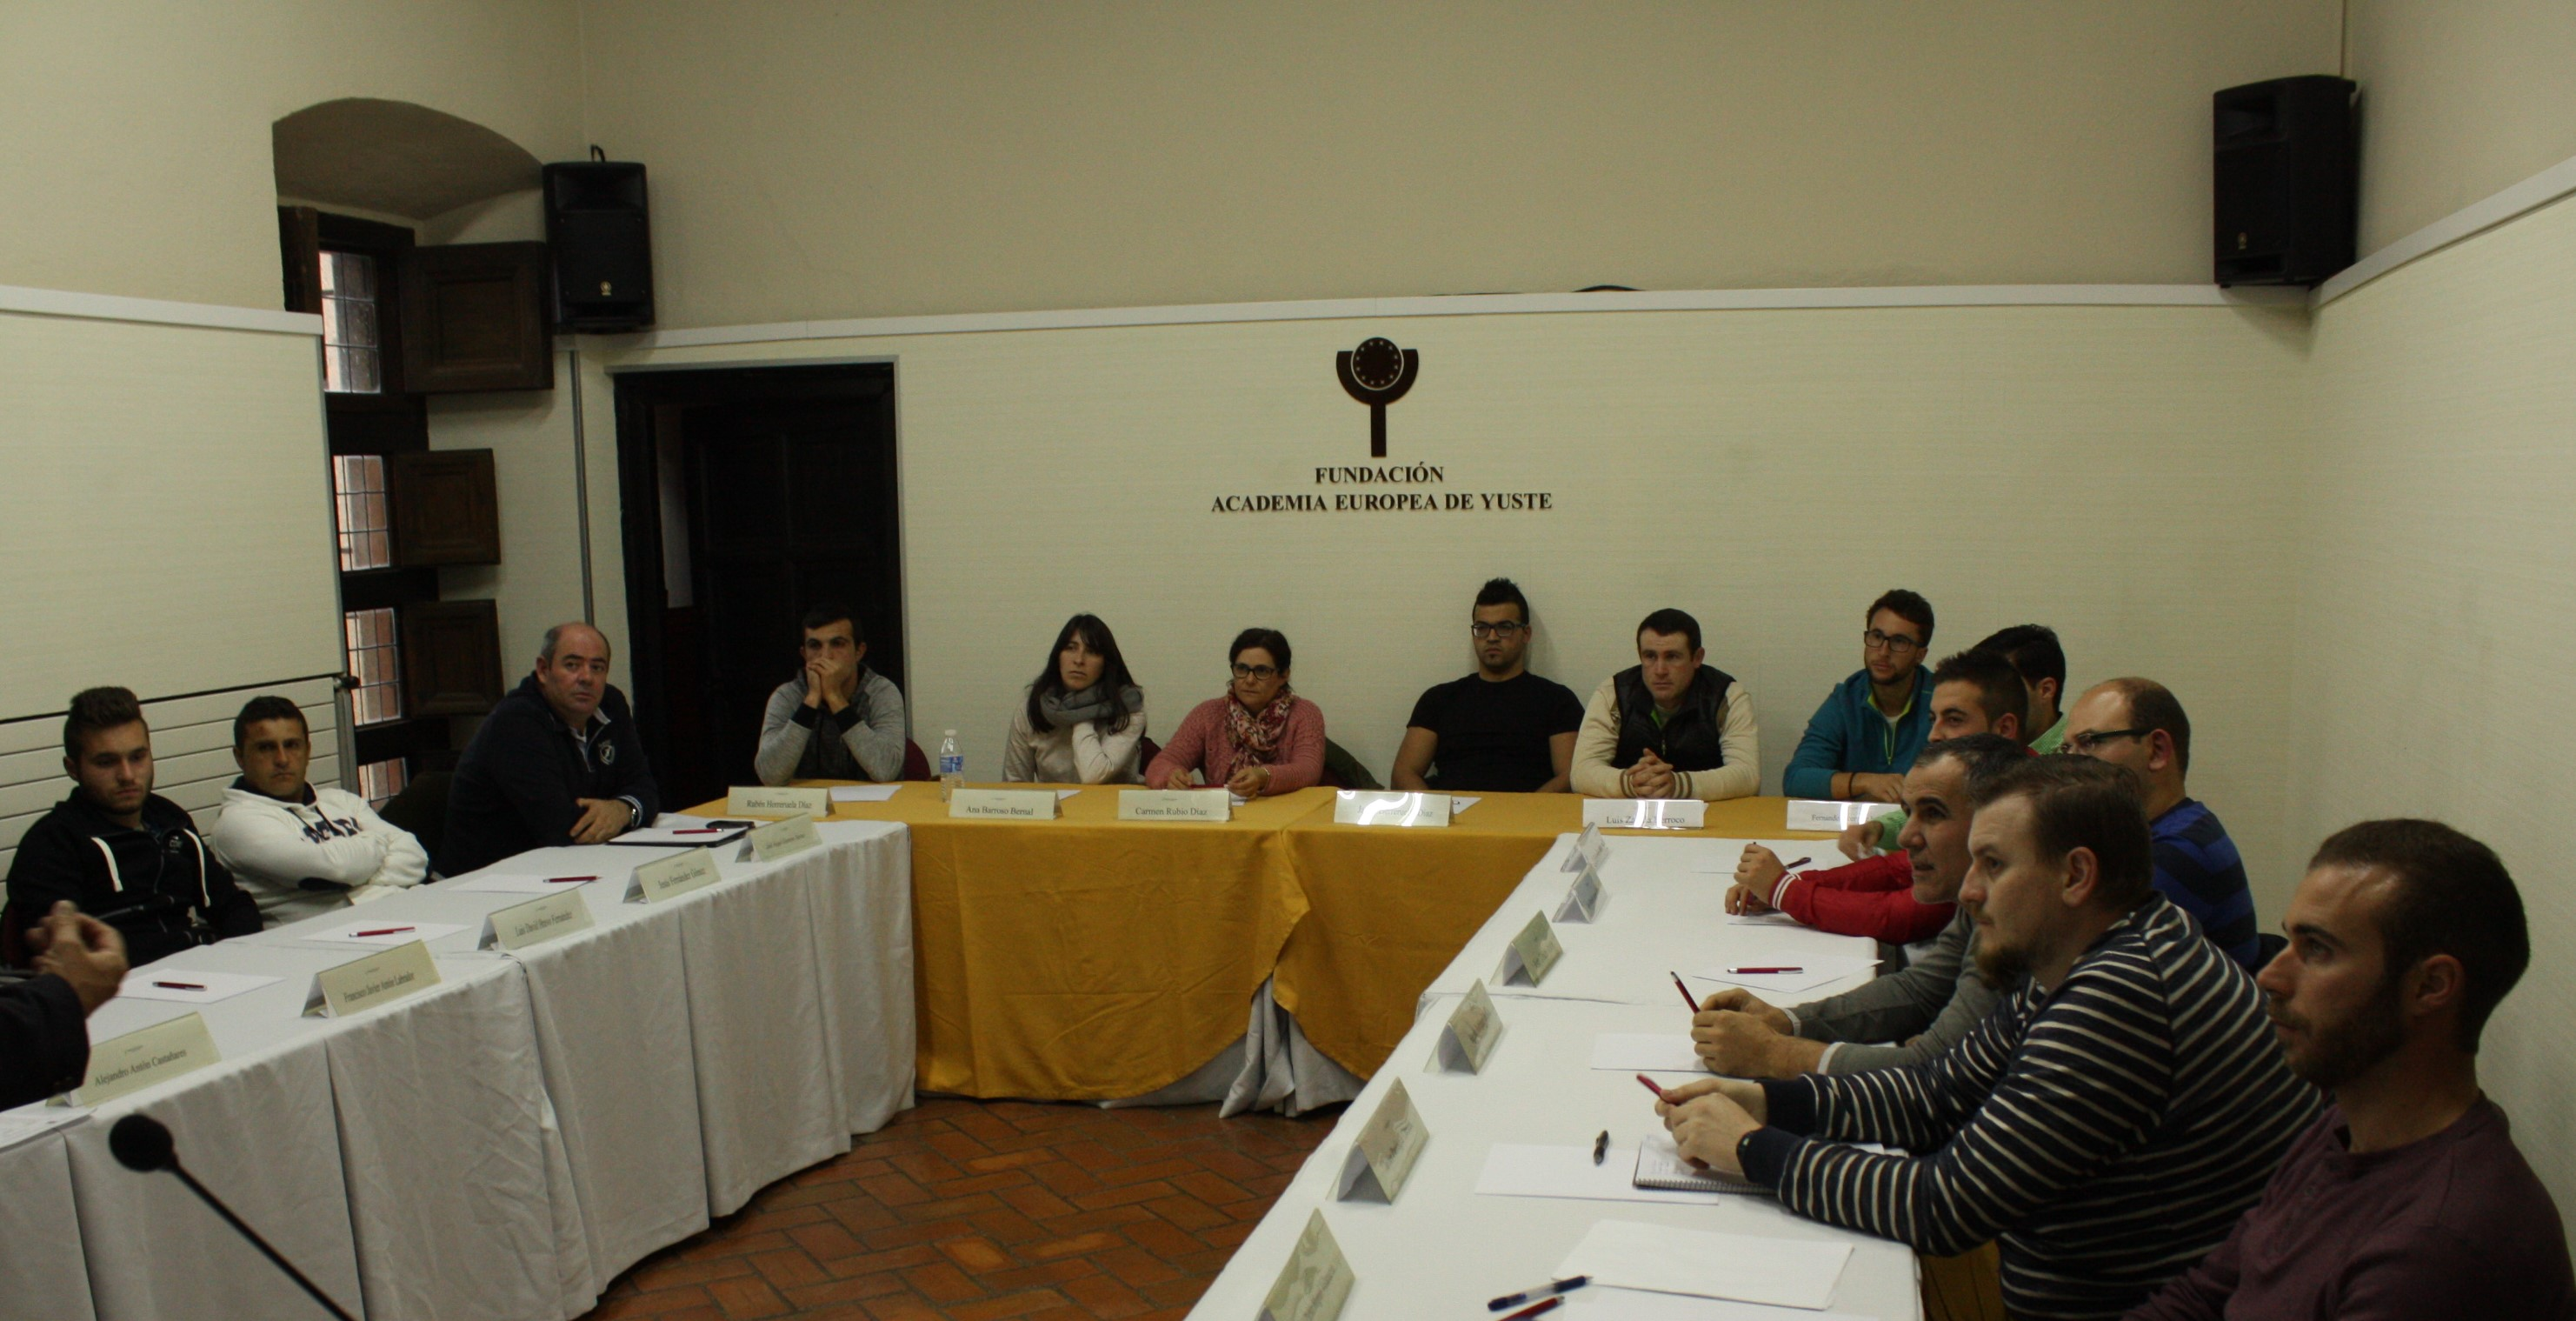 The Entrepreneur Program finalizes its academic part, conducted at the European Academy of Yuste Foundation